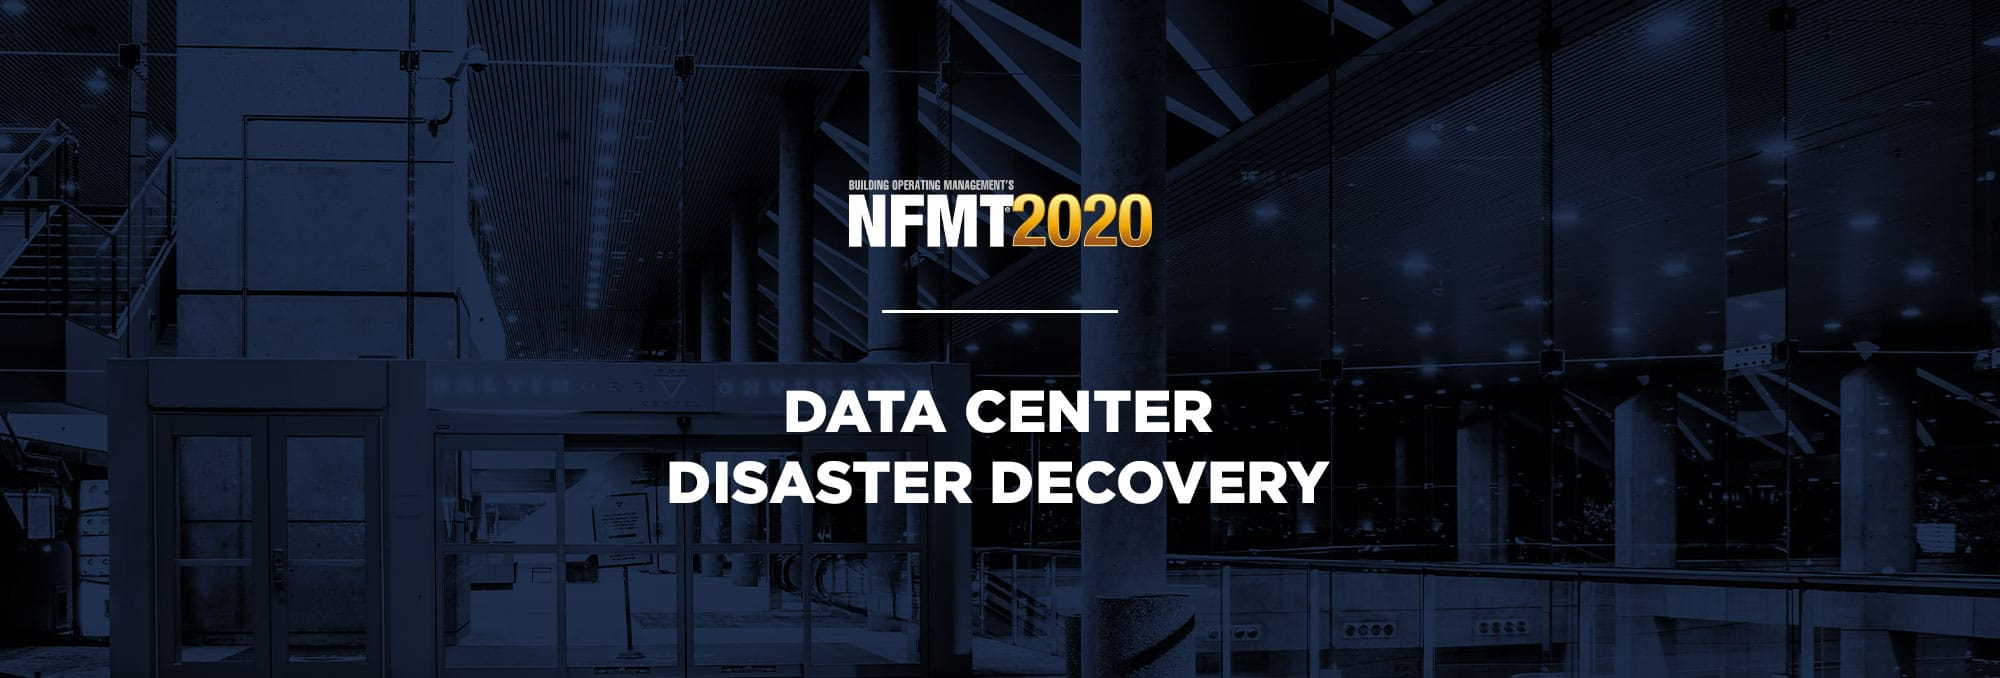 NFMT2020 graphic